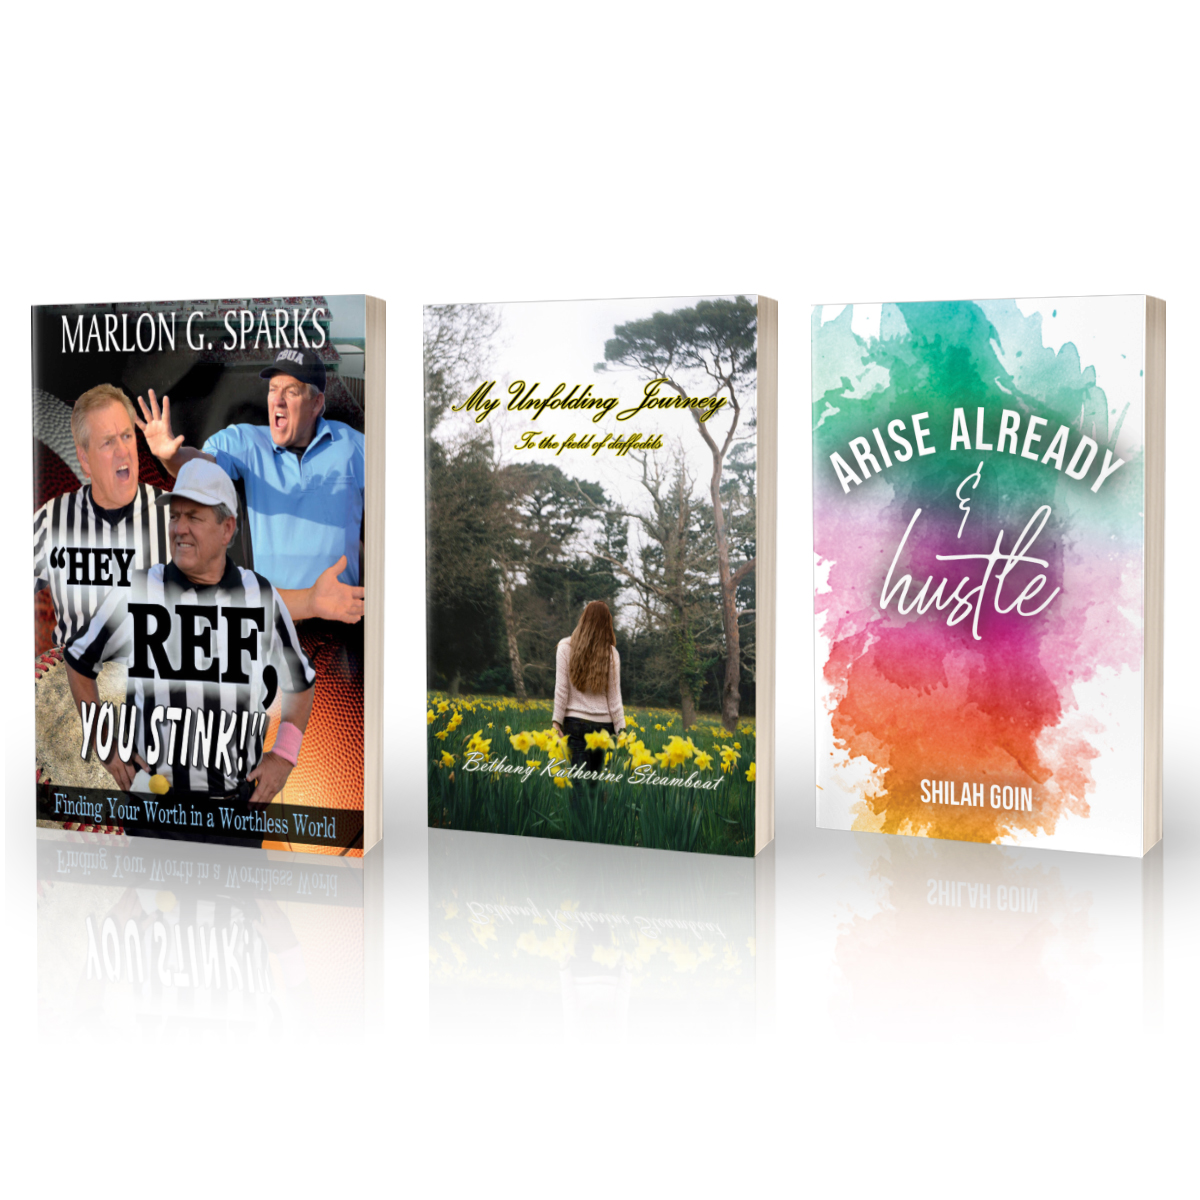 NEW BOOKS!!! Marlon G. Sparks: https://t.co/AQKsvRL7Ed  Shilah Goin: https://t.co/tueZdQZlIJ  Bethany Katherine Steamboat: https://t.co/1agc5Y4q8l ---Have you ever dreamed of being an author? @TBN & @trilogybooks want to help! Follow us and go to https://t.co/t7CoiqZM7A now https://t.co/izpFBKE26w